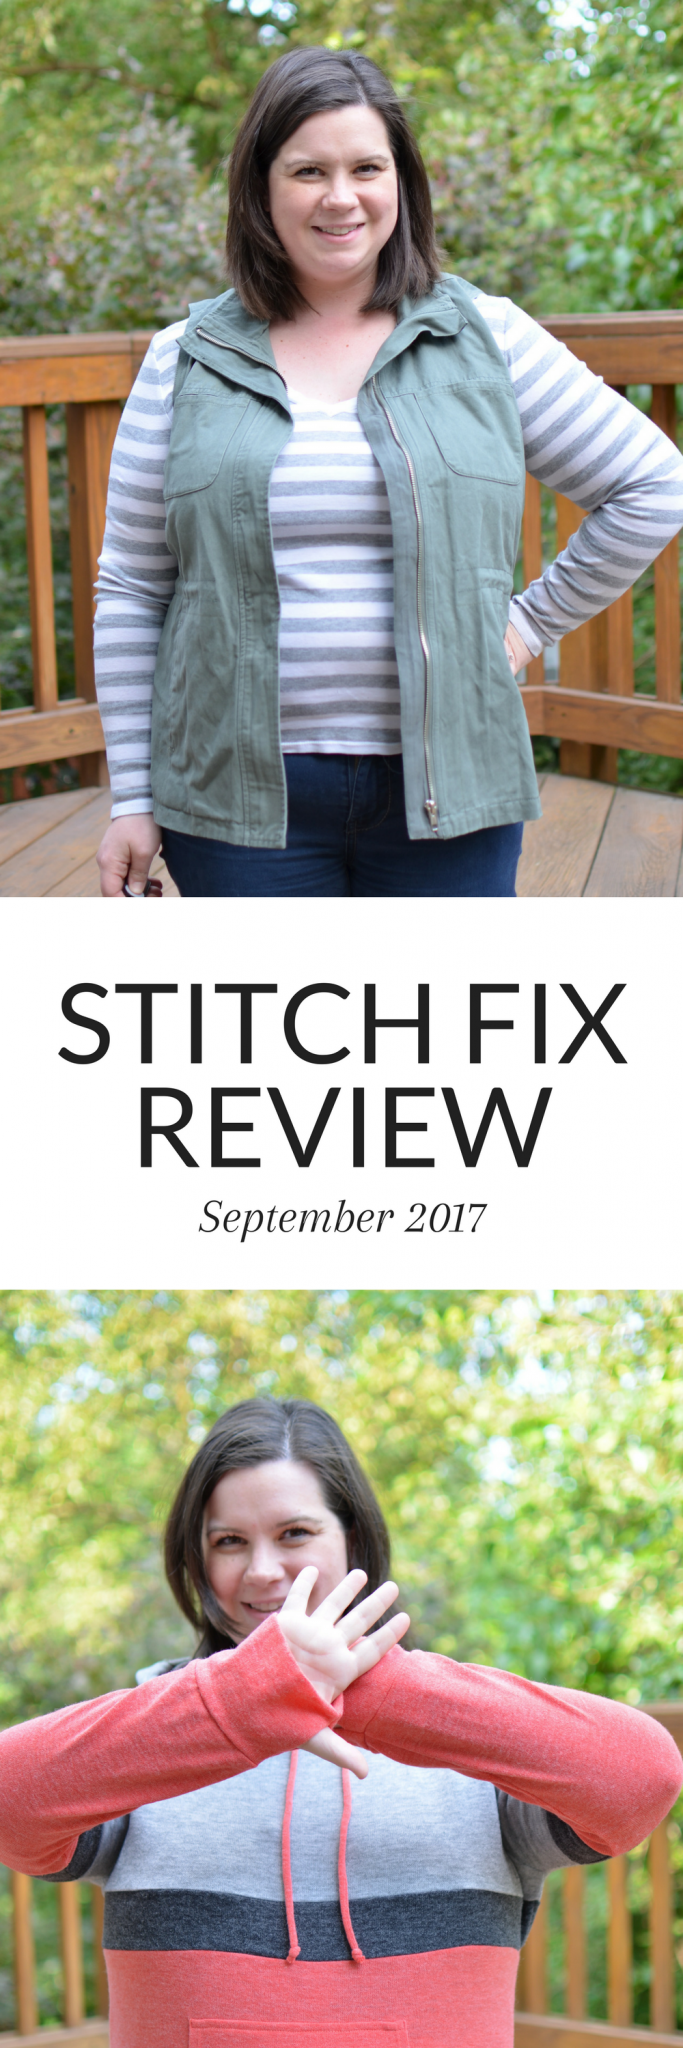 September Stitch Fix Review! Including pieces from Levi's, 41Hawthorn, Skies are Blue, Loveappella, and Kut from the Kloth along with how they fit!